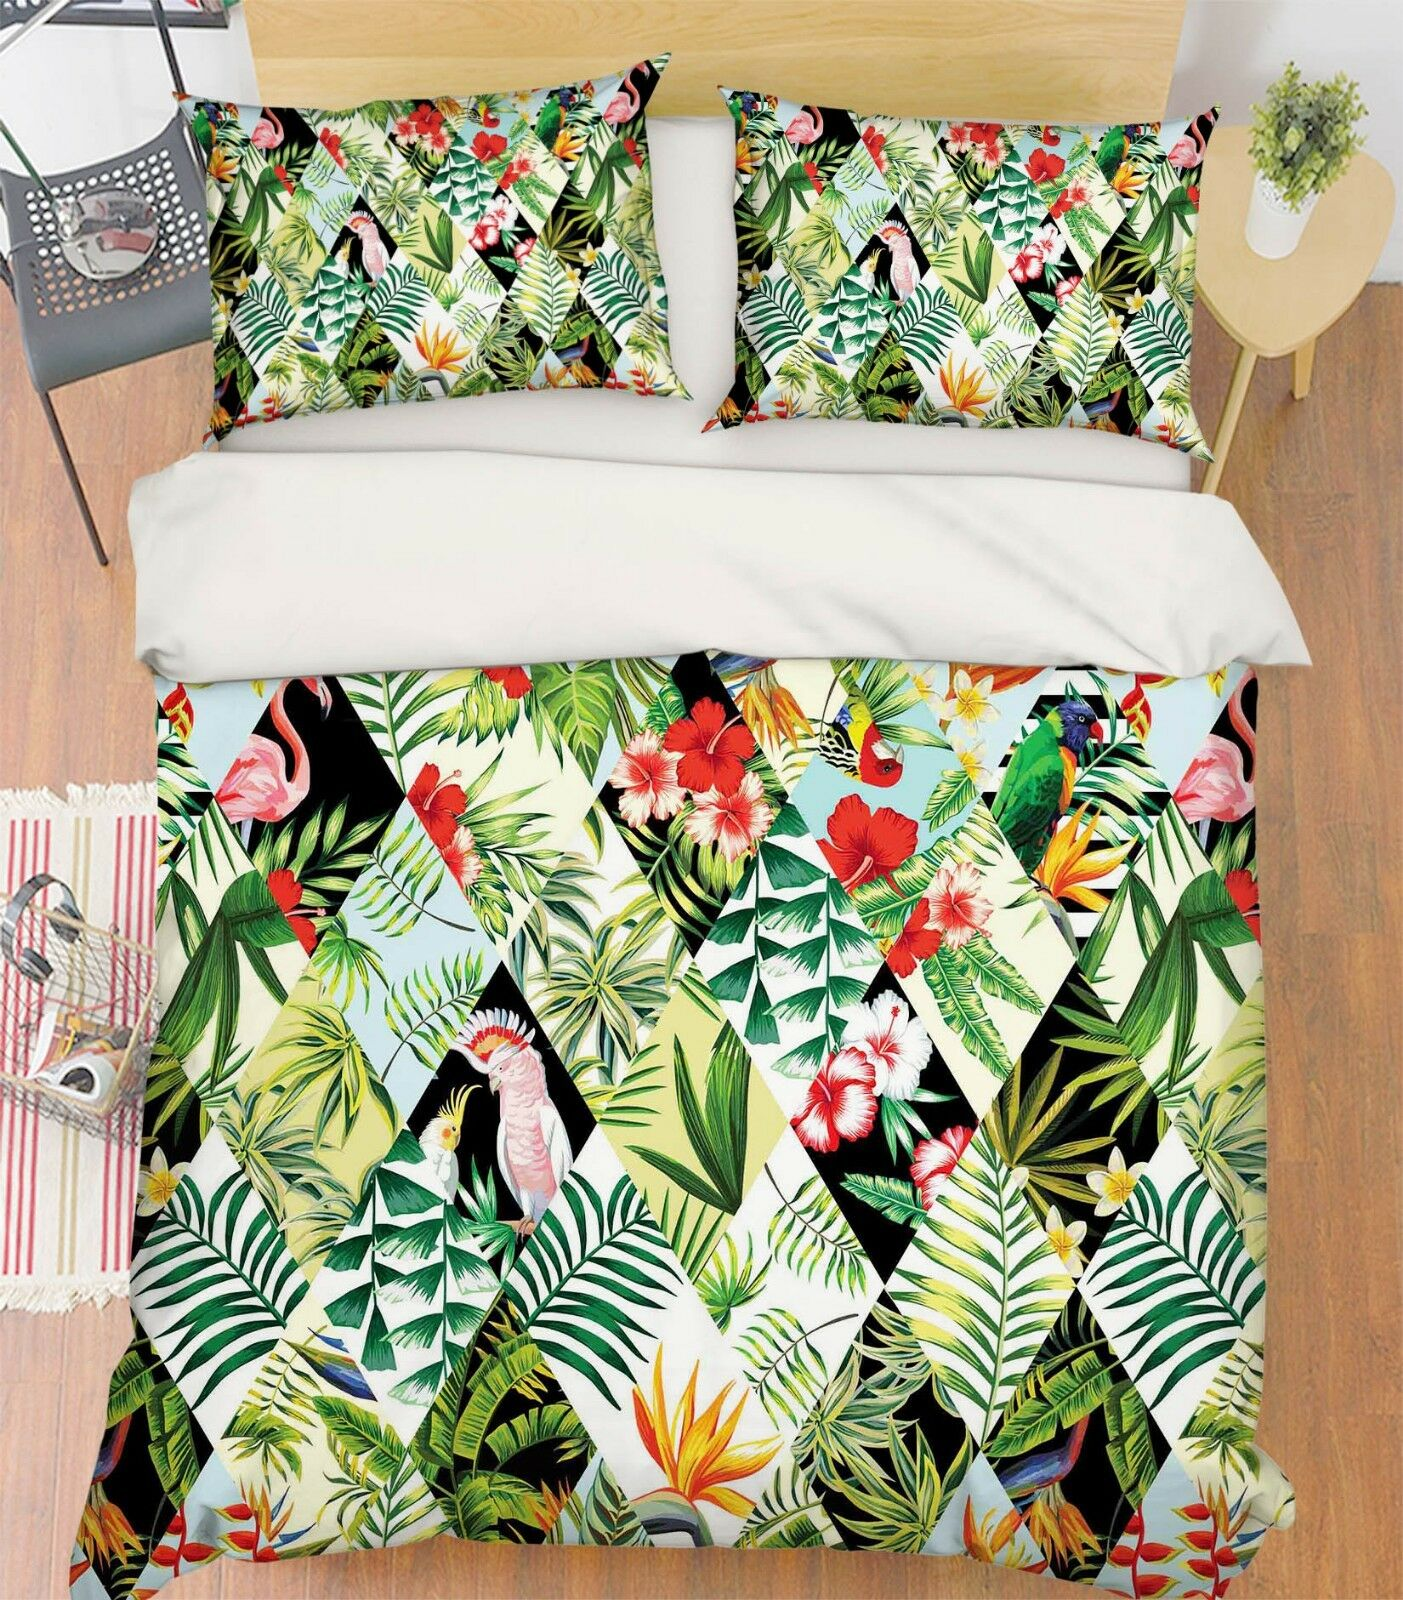 3D Painted Leaves 968 Bed Pillowcases Quilt Duvet Cover Set Single Queen King CA